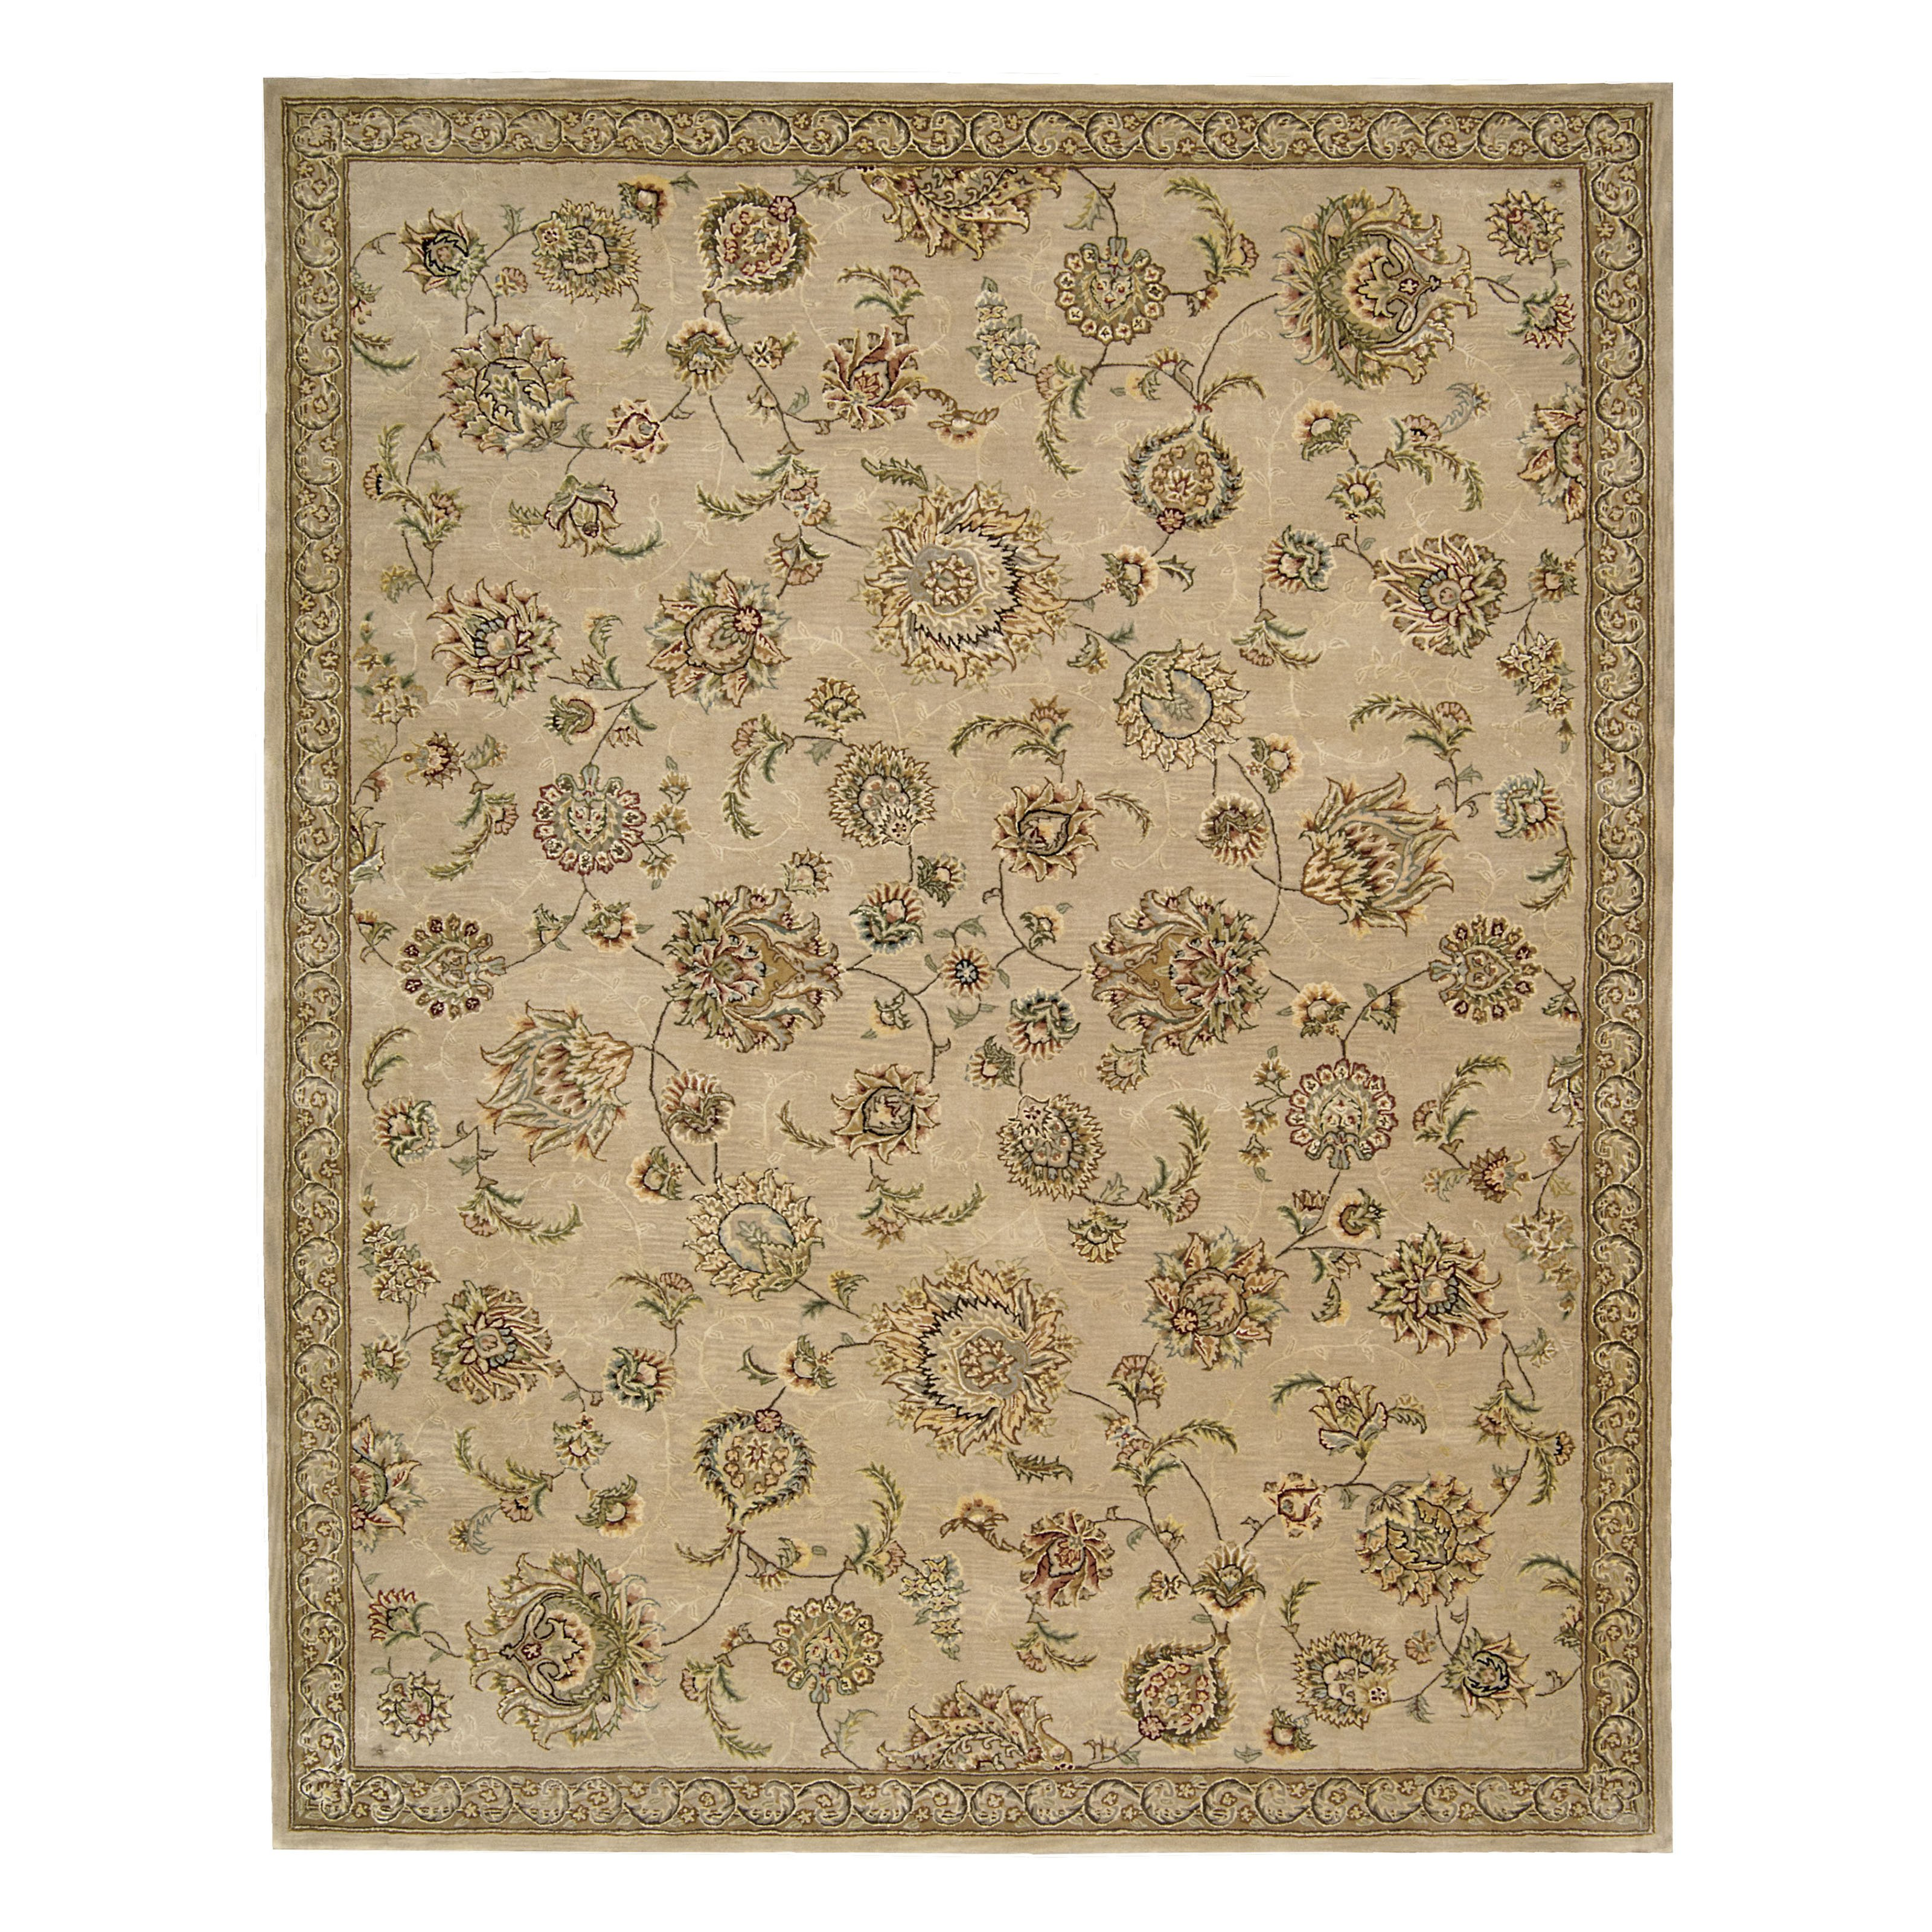 Nourison 2000 2360 Indoor Area Rug Beige 2.5L x 12W ft. by Overstock